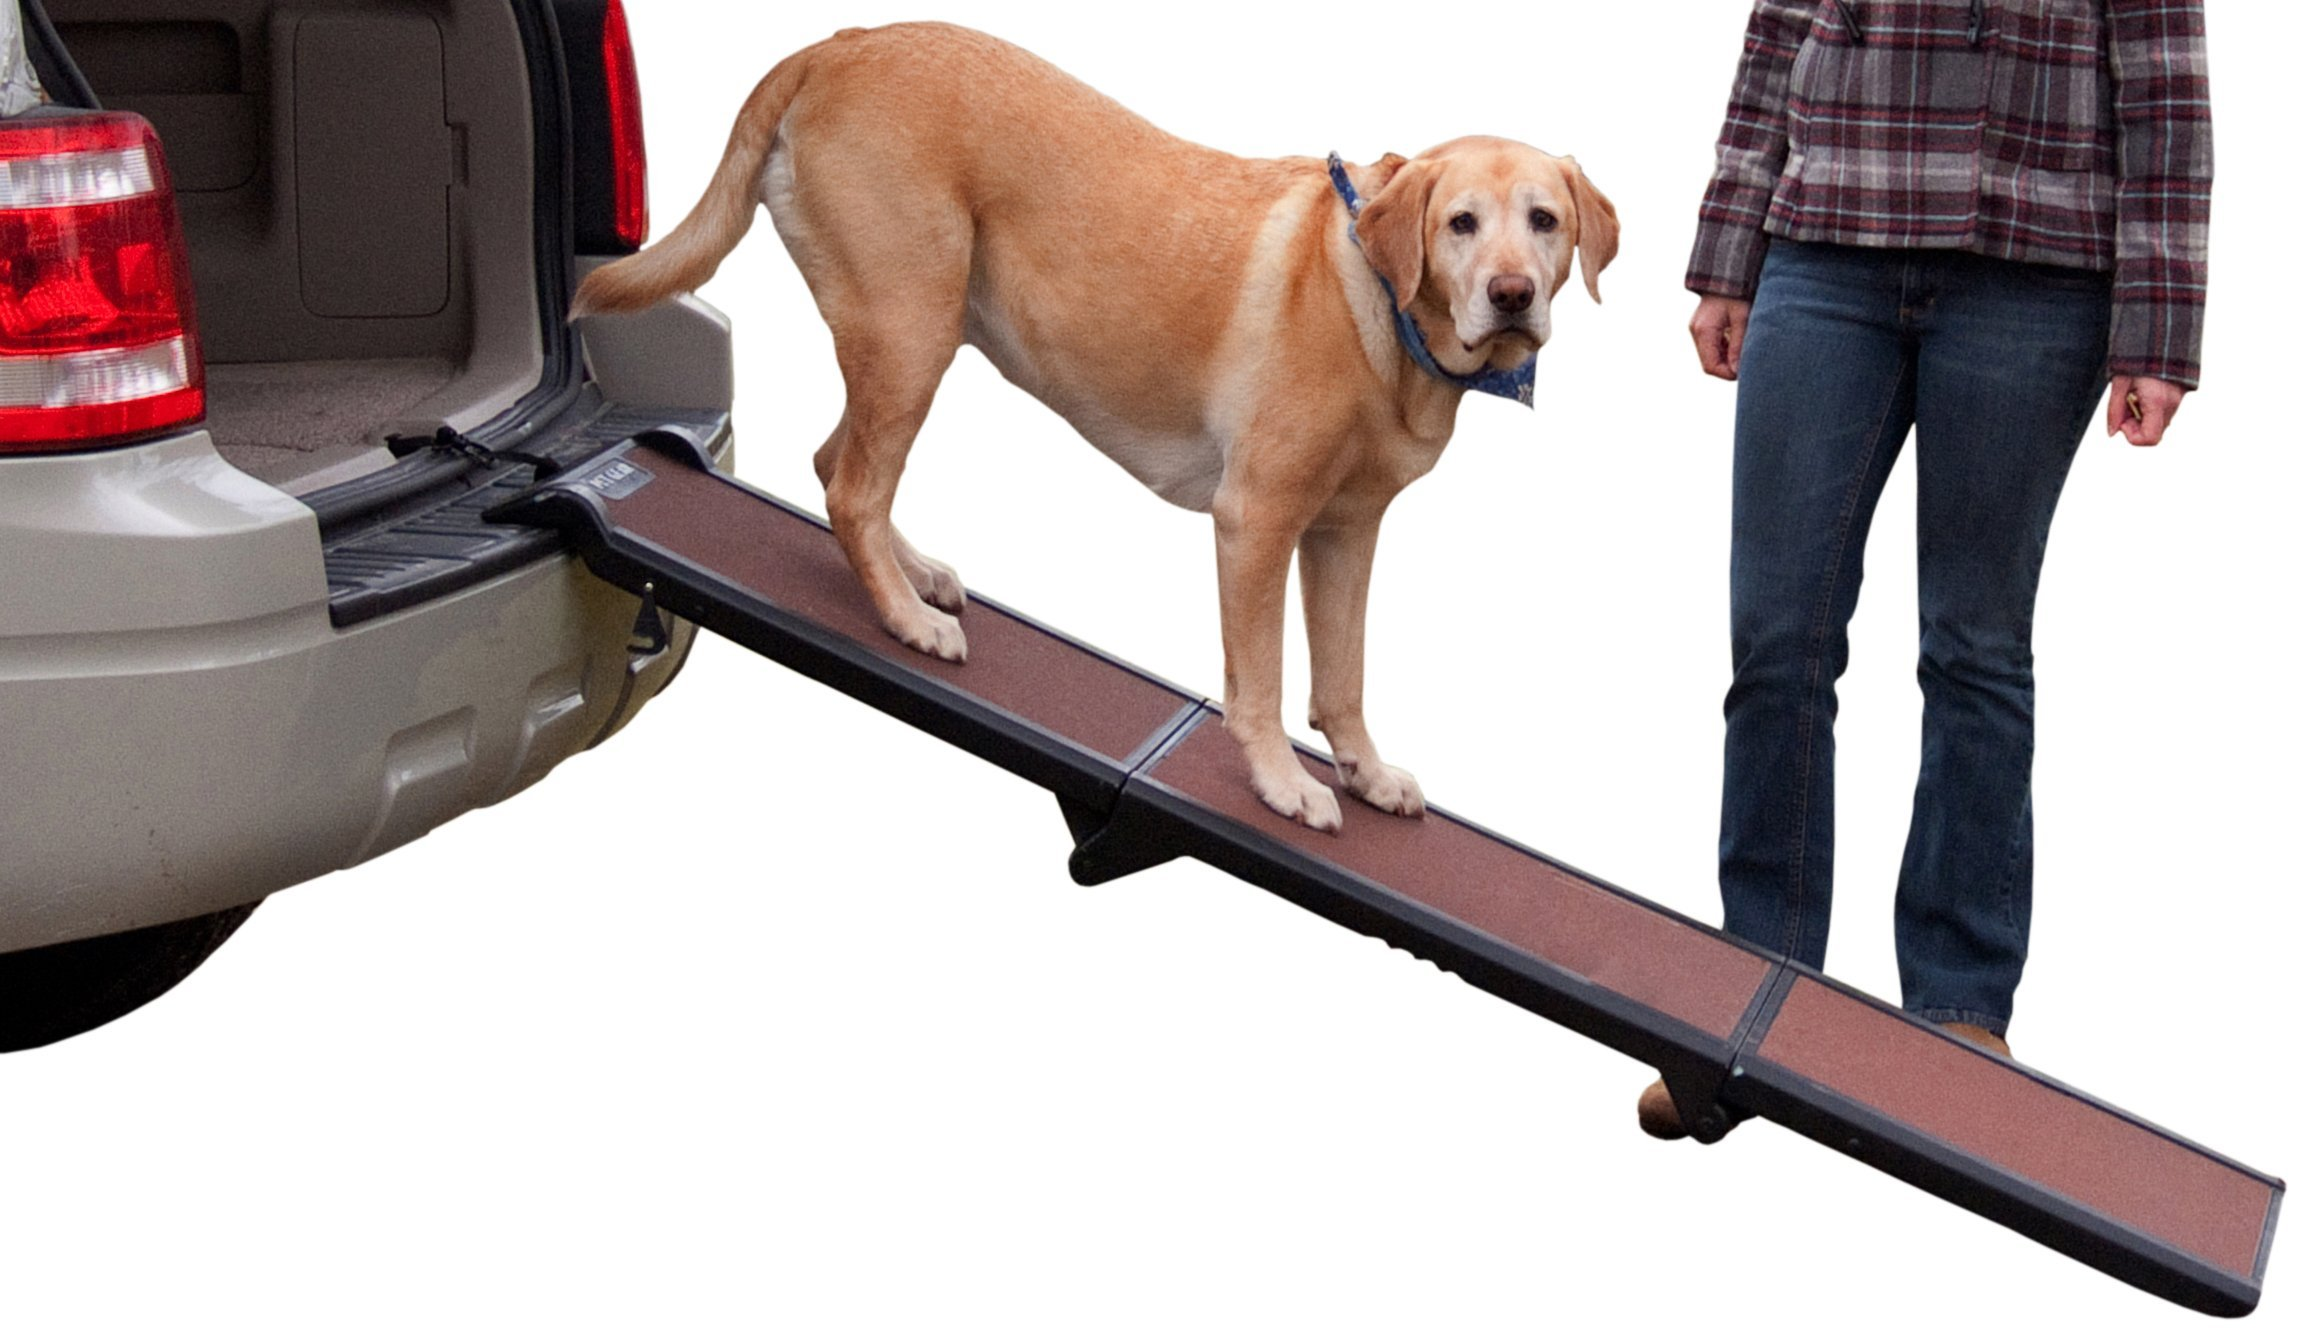 Pet Gear Tri-Fold Ramp, Supports up to 200lbs, 71 in. Long, Patented Compact Easy-Fold Design, Two Models to Choose from, Safety Tether Included by Pet Gear